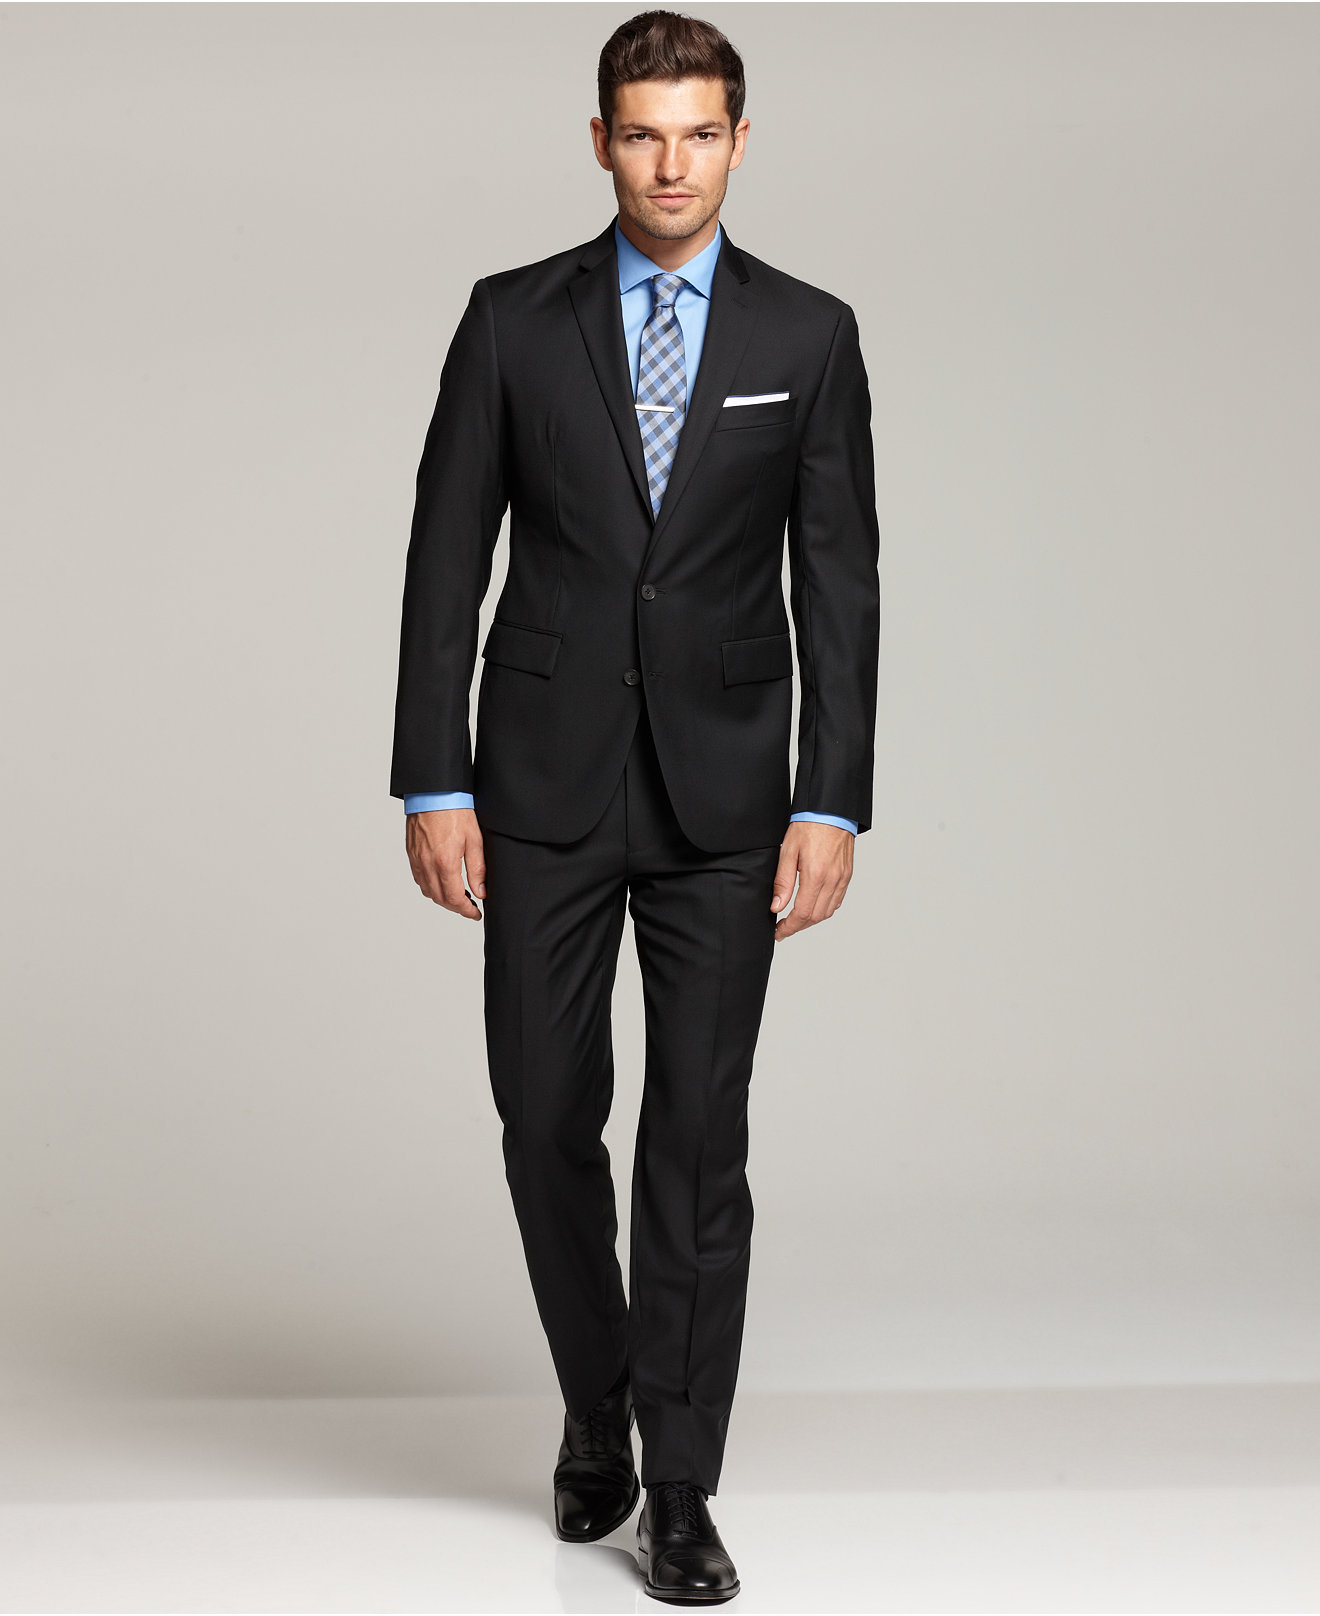 Ryan Seacrest Distinction Black Solid Modern Fit Suit Separates ...